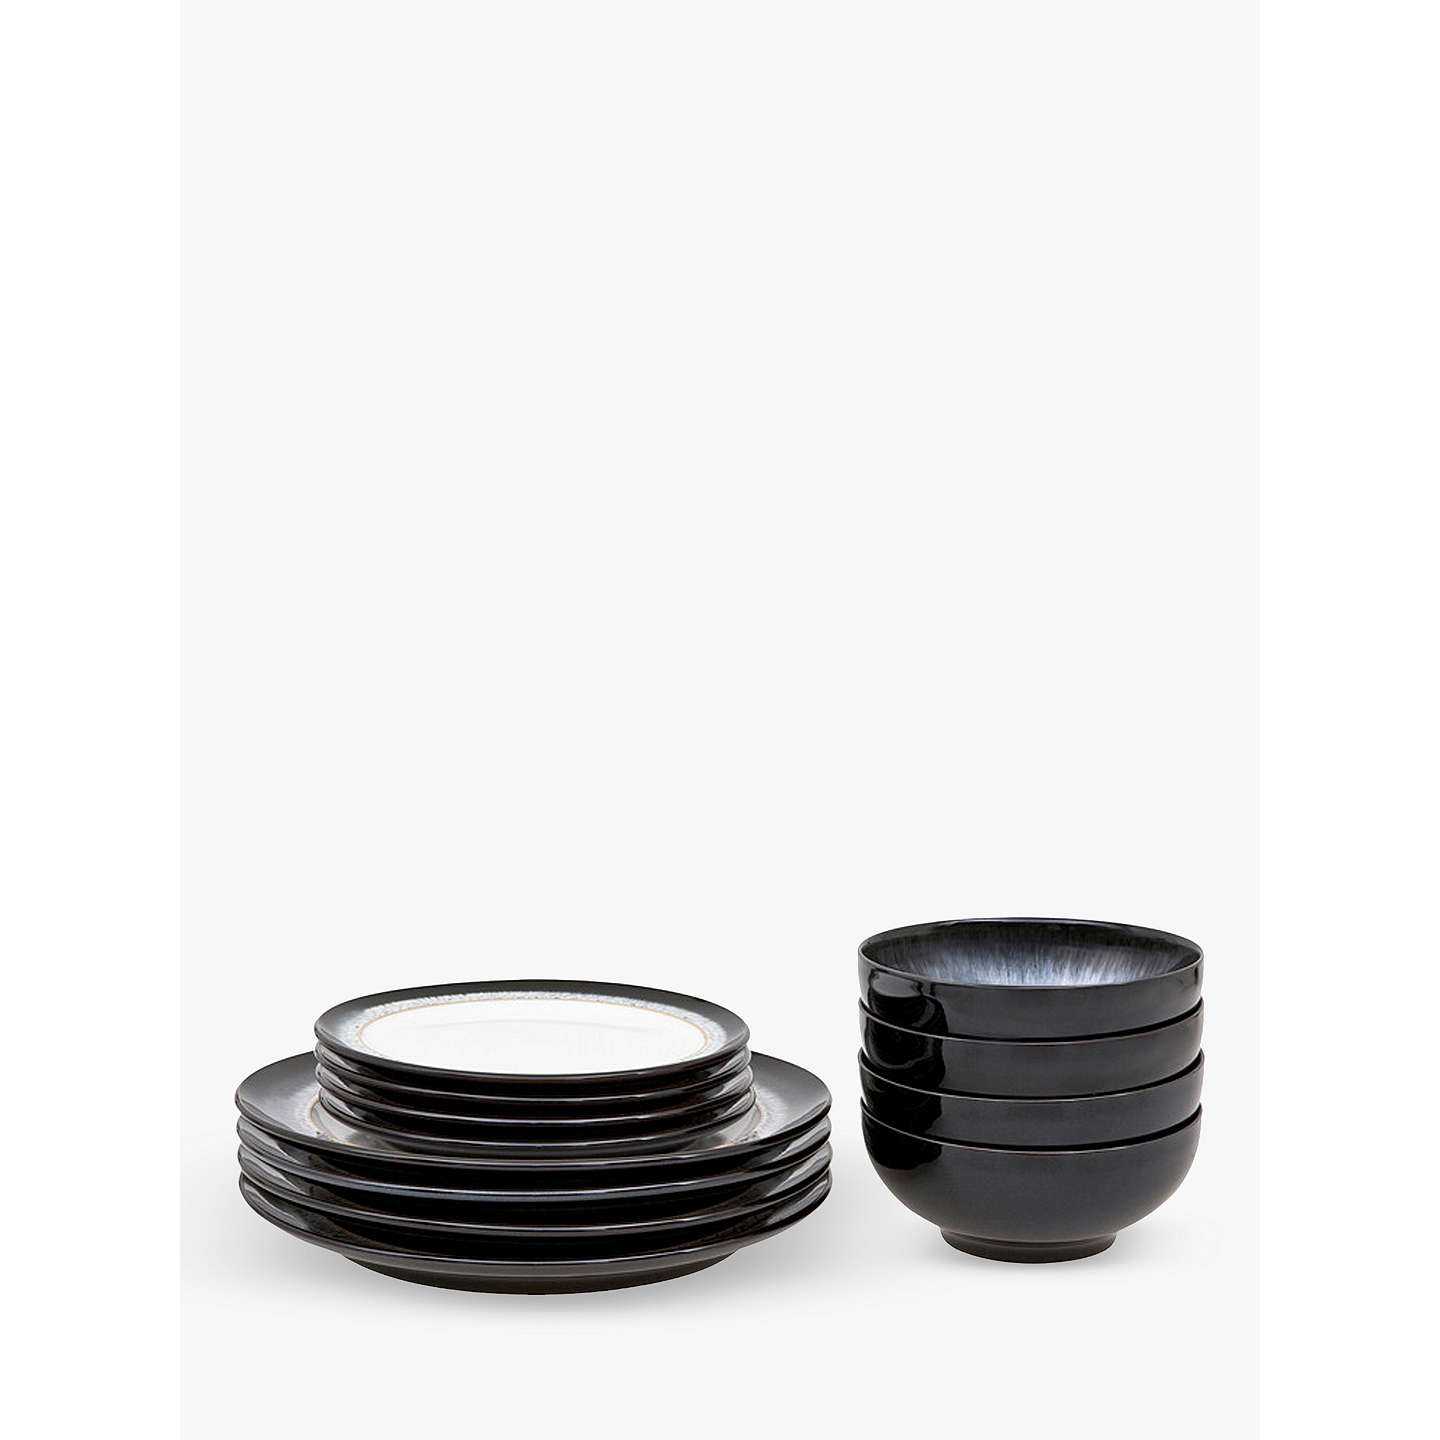 BuyDenby Halo Dinnerware Set 12 Pieces Online at johnlewis.com ...  sc 1 st  John Lewis & Denby Halo Dinnerware Set 12 Pieces at John Lewis